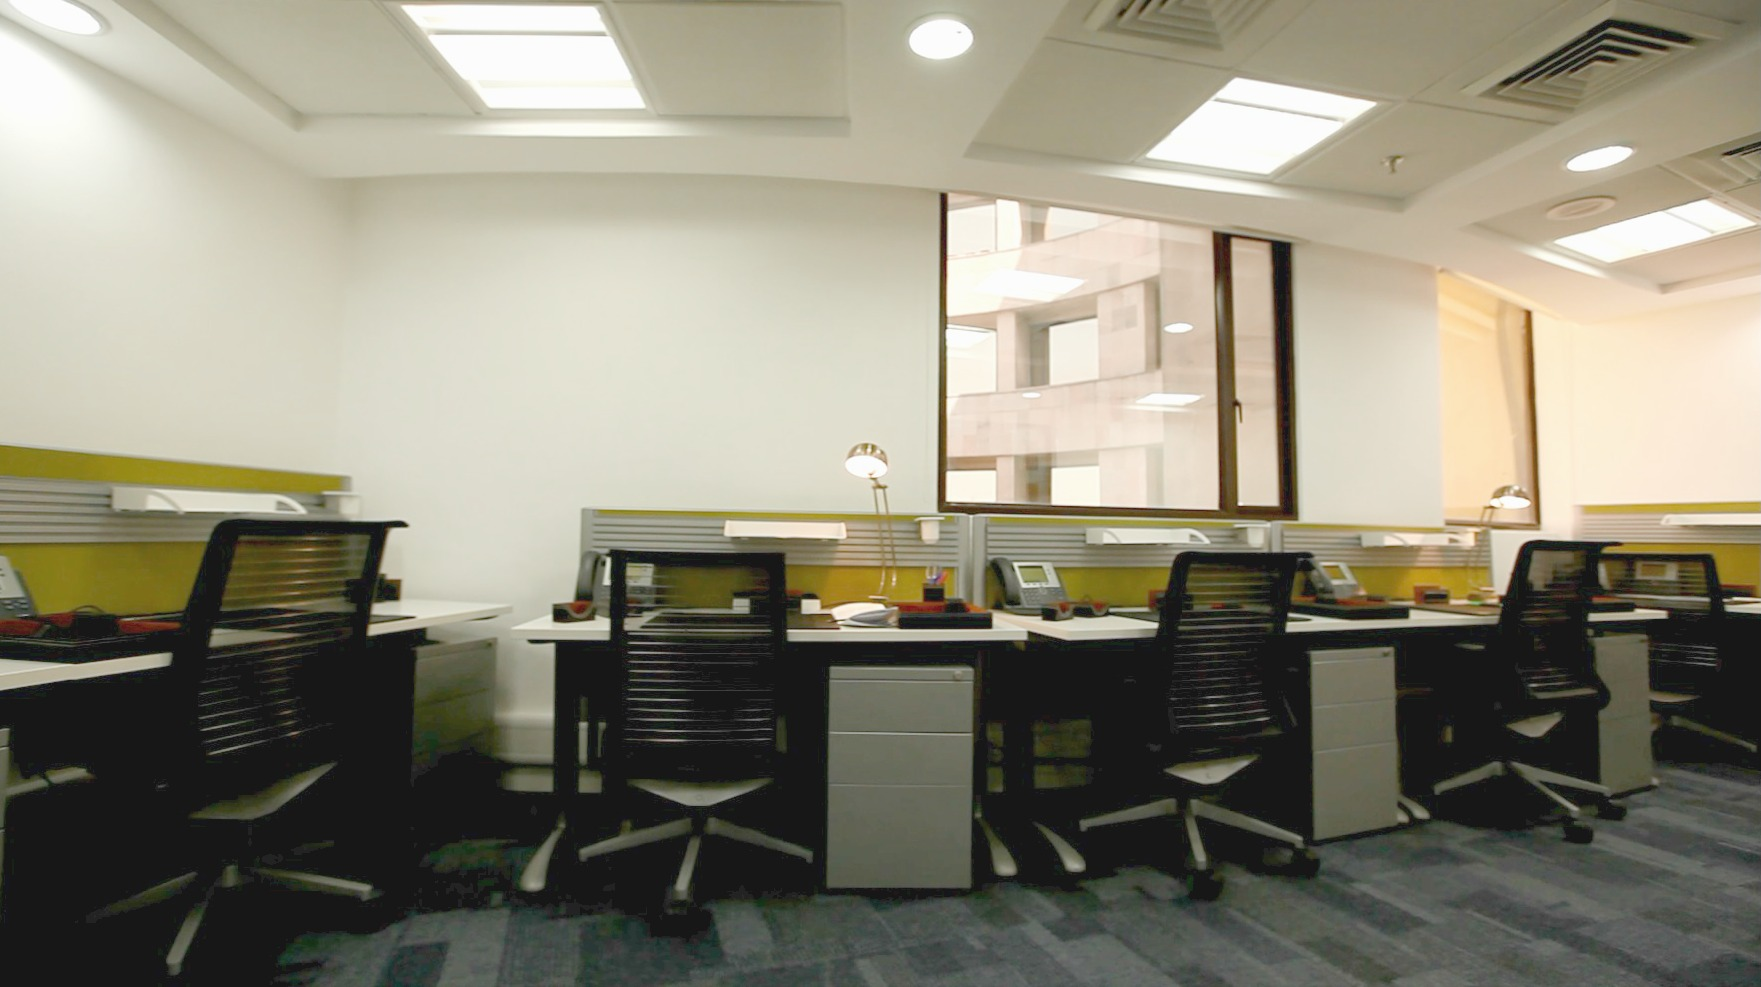 5 Step Checklist to View an Office Space